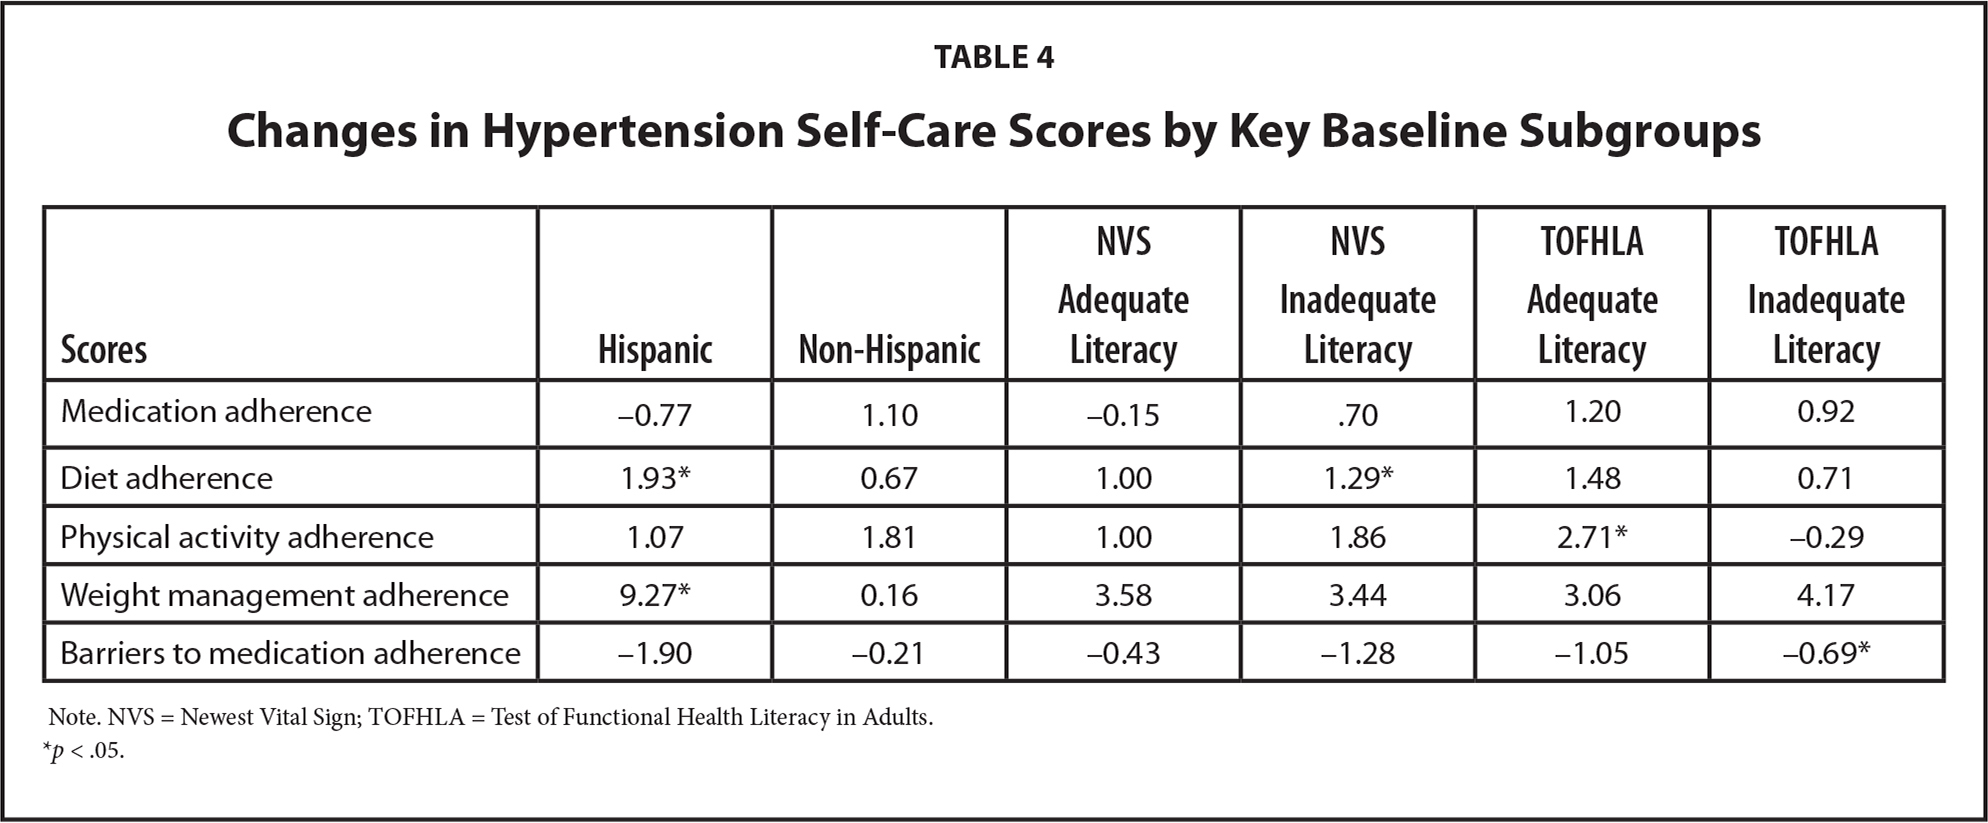 Changes in Hypertension Self-Care Scores by Key Baseline Subgroups